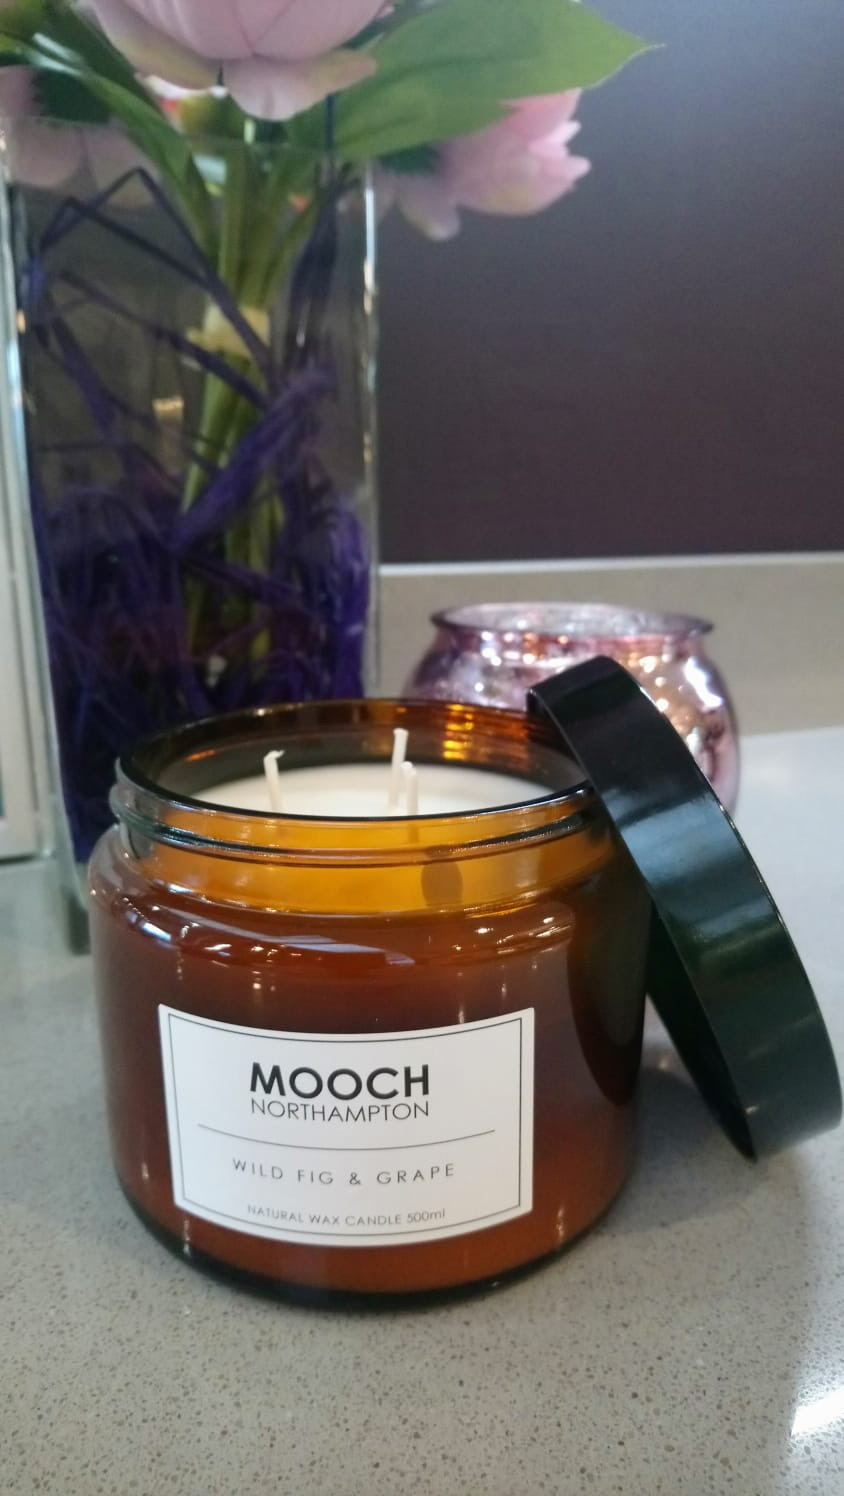 MOOCH 3-WICK CANDLE - WILD FIG & GRAPE